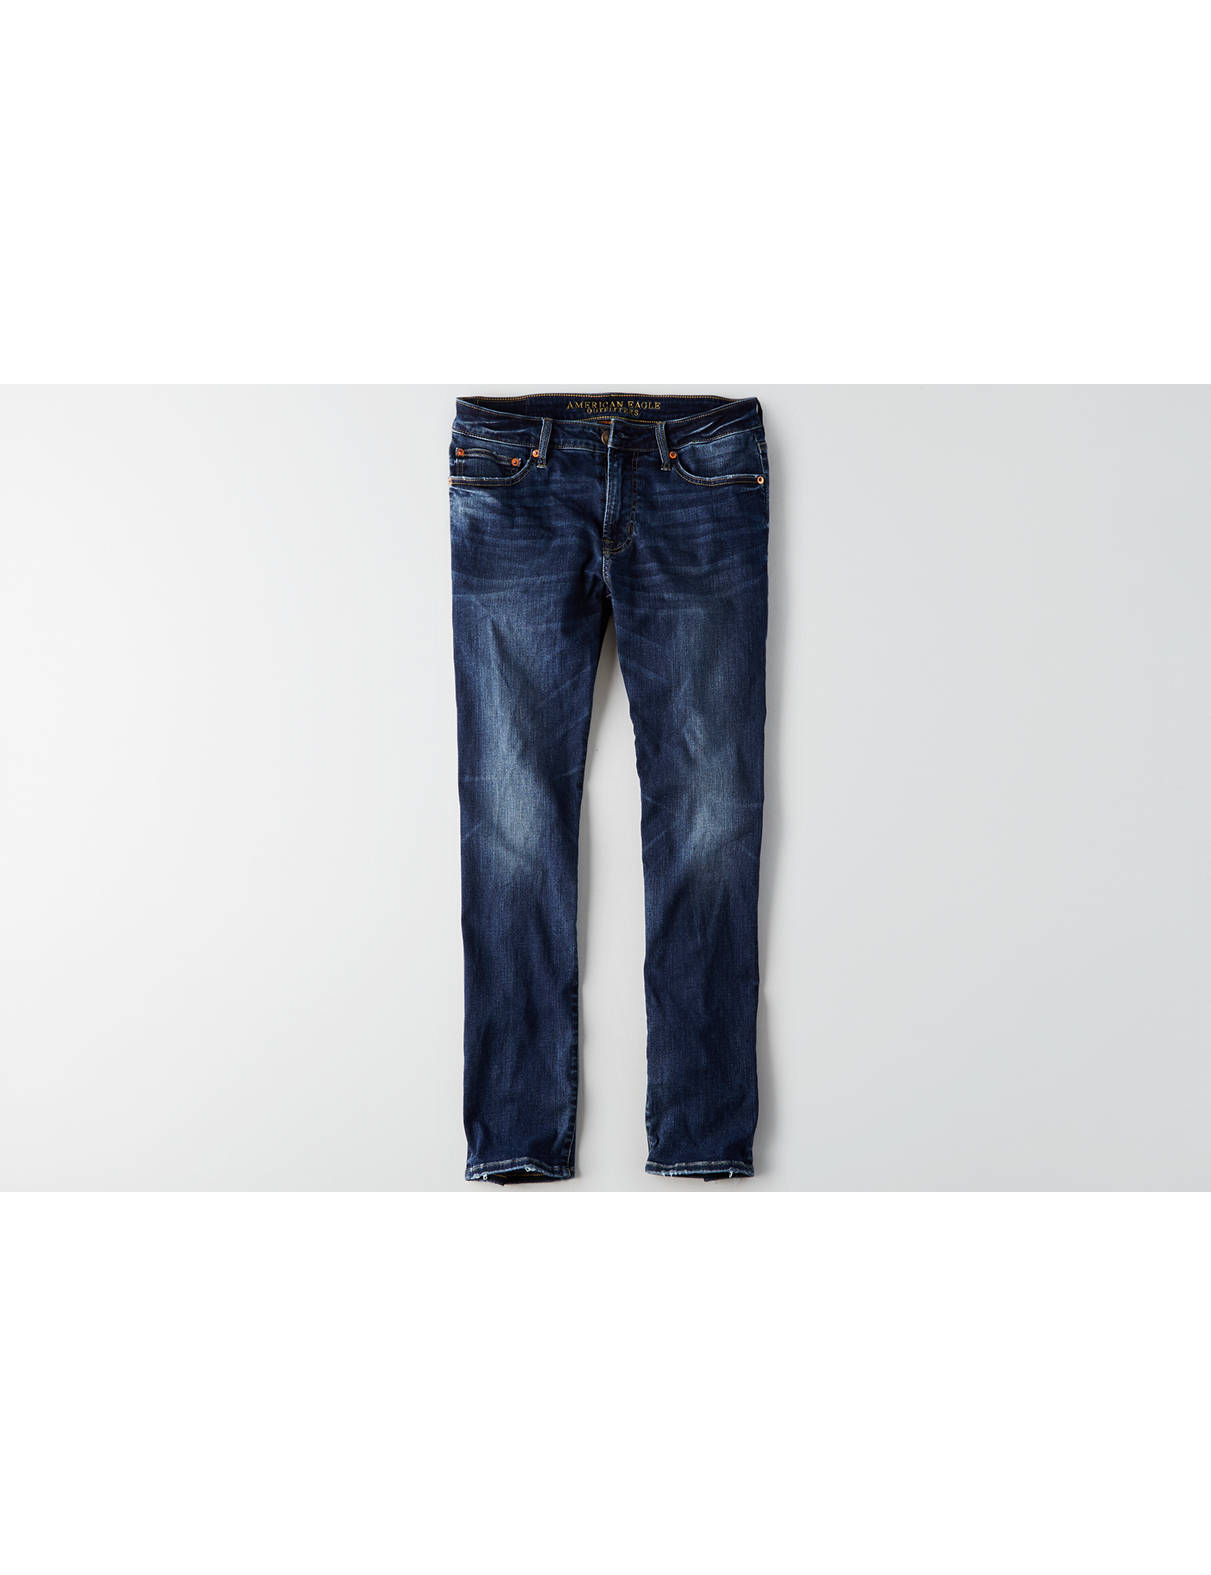 Men&39s Jeans | American Eagle Outfitters